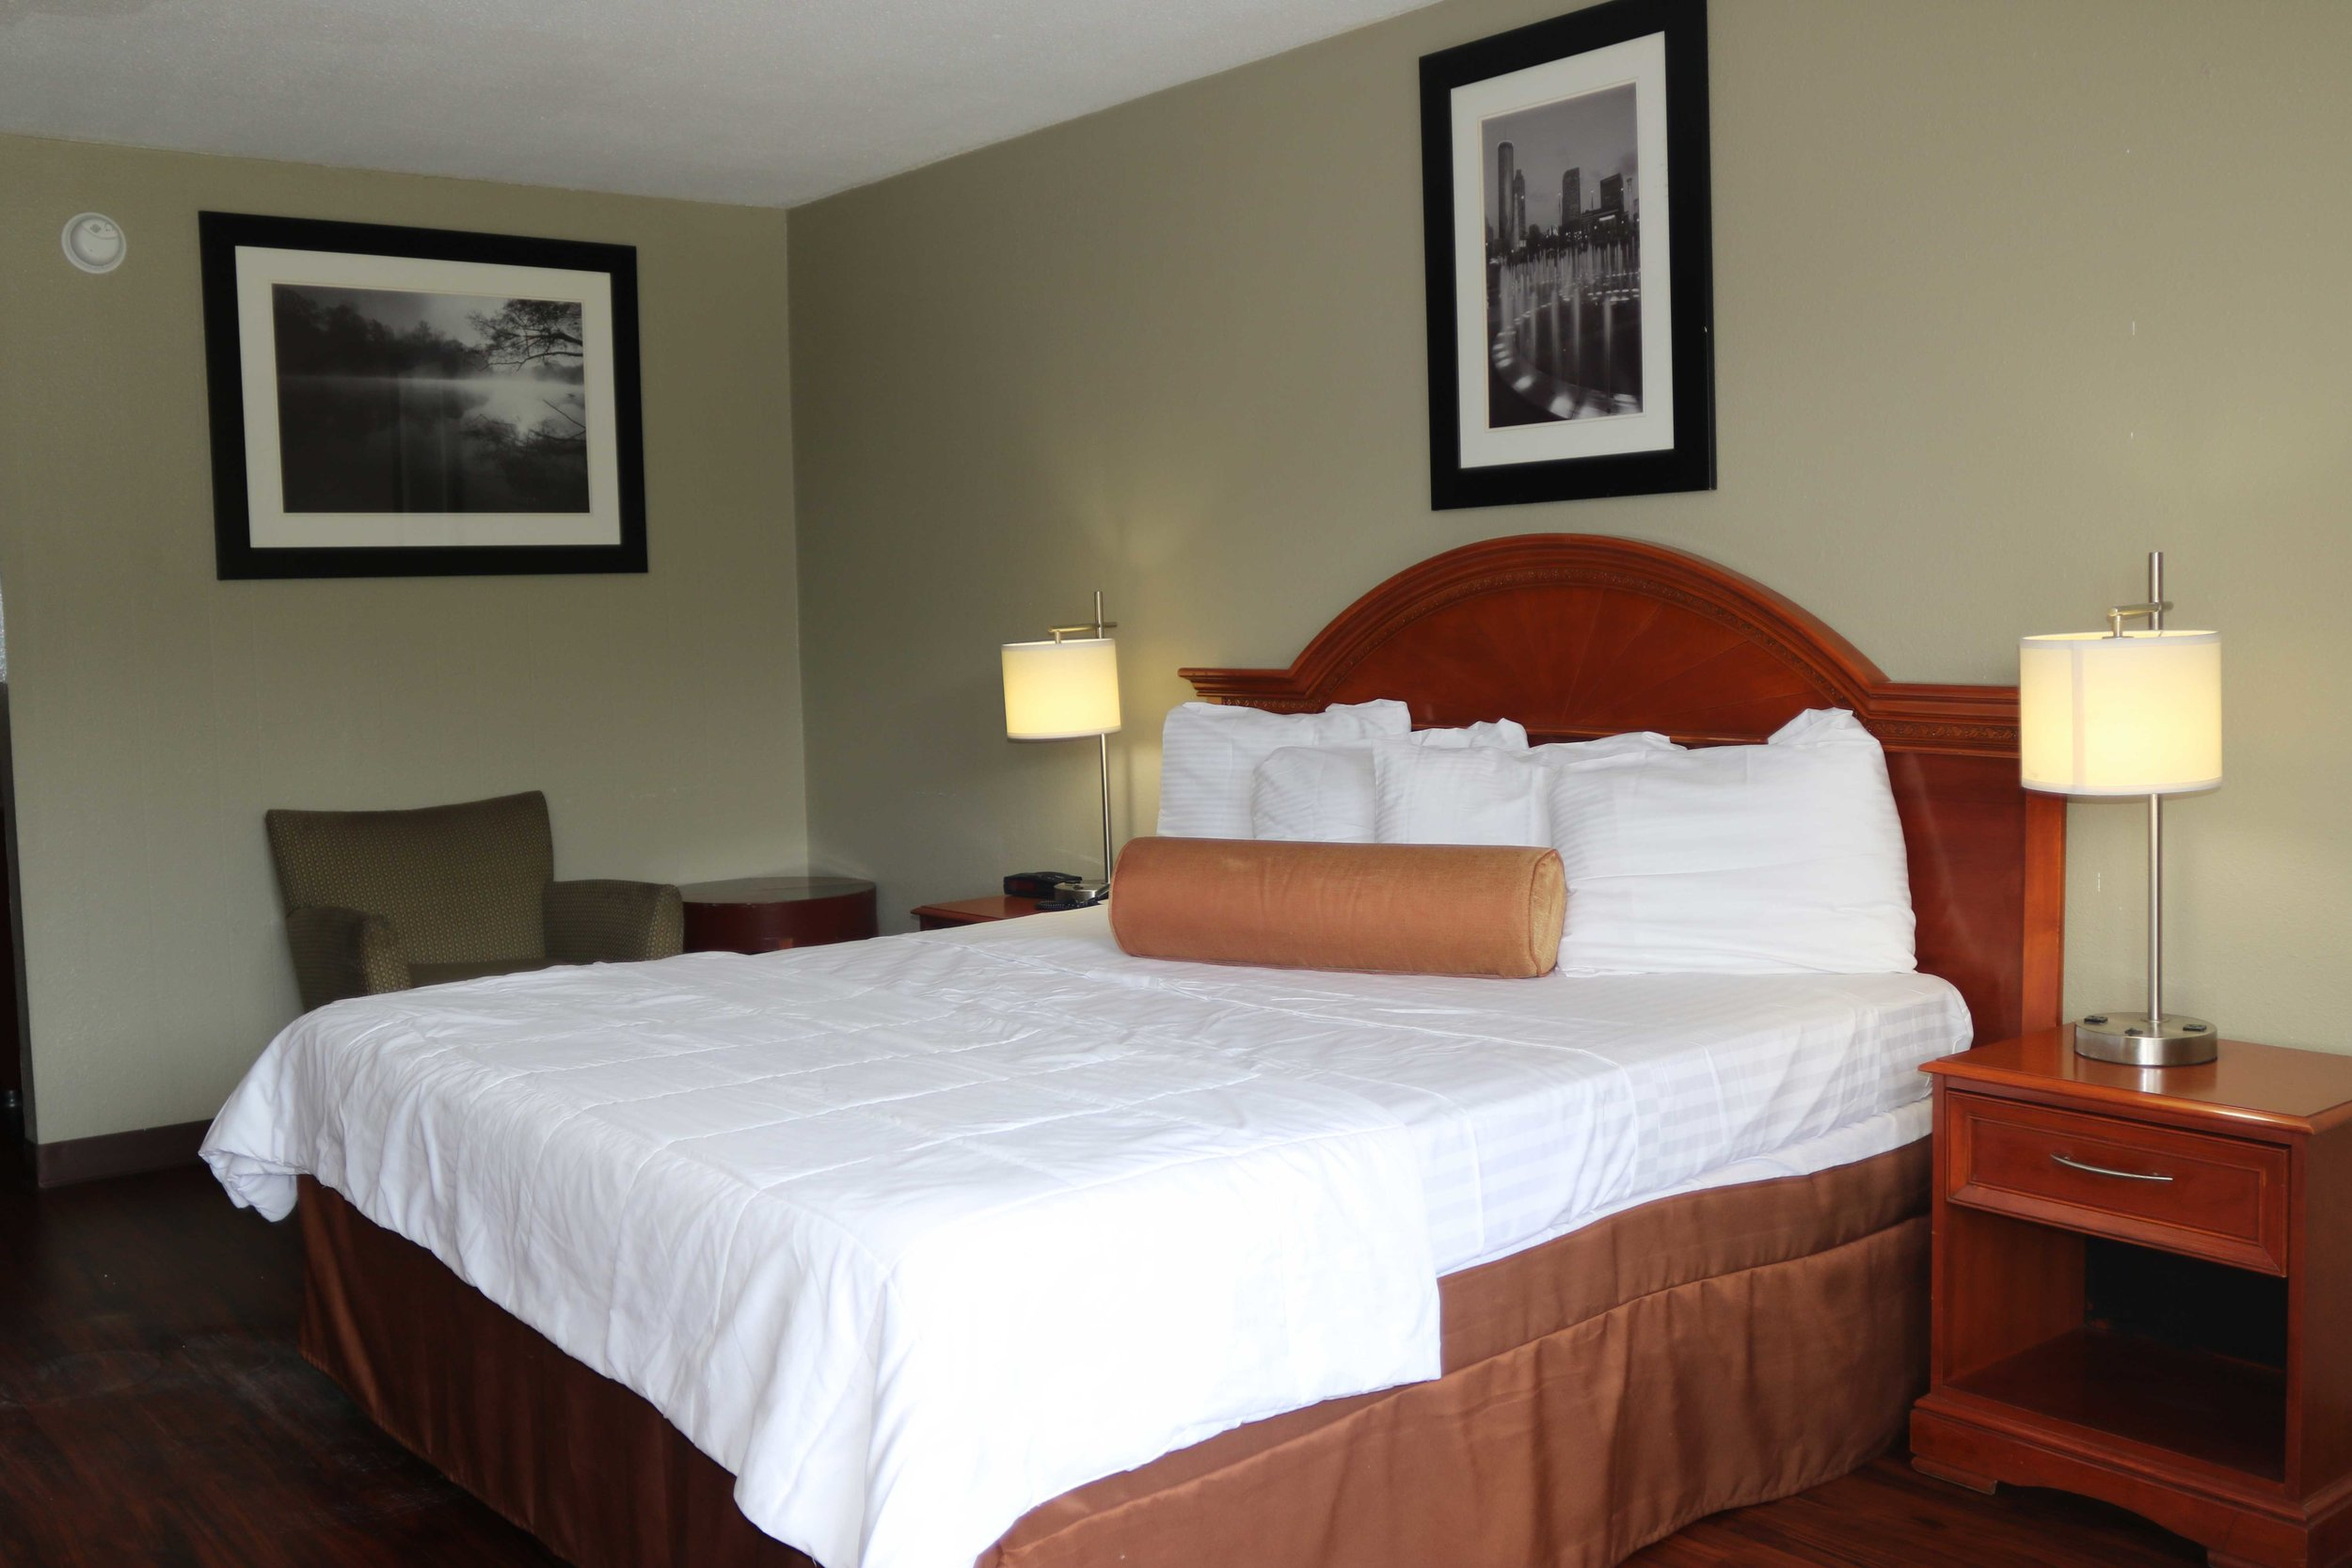 premium room - Fit for a king (or queen!), this room comes with a large king-size bed plus of all of the amenities for a comfortable stay alone or with company.Number of guests: 1 (Max 2 persons )Price: $59.99 +tax